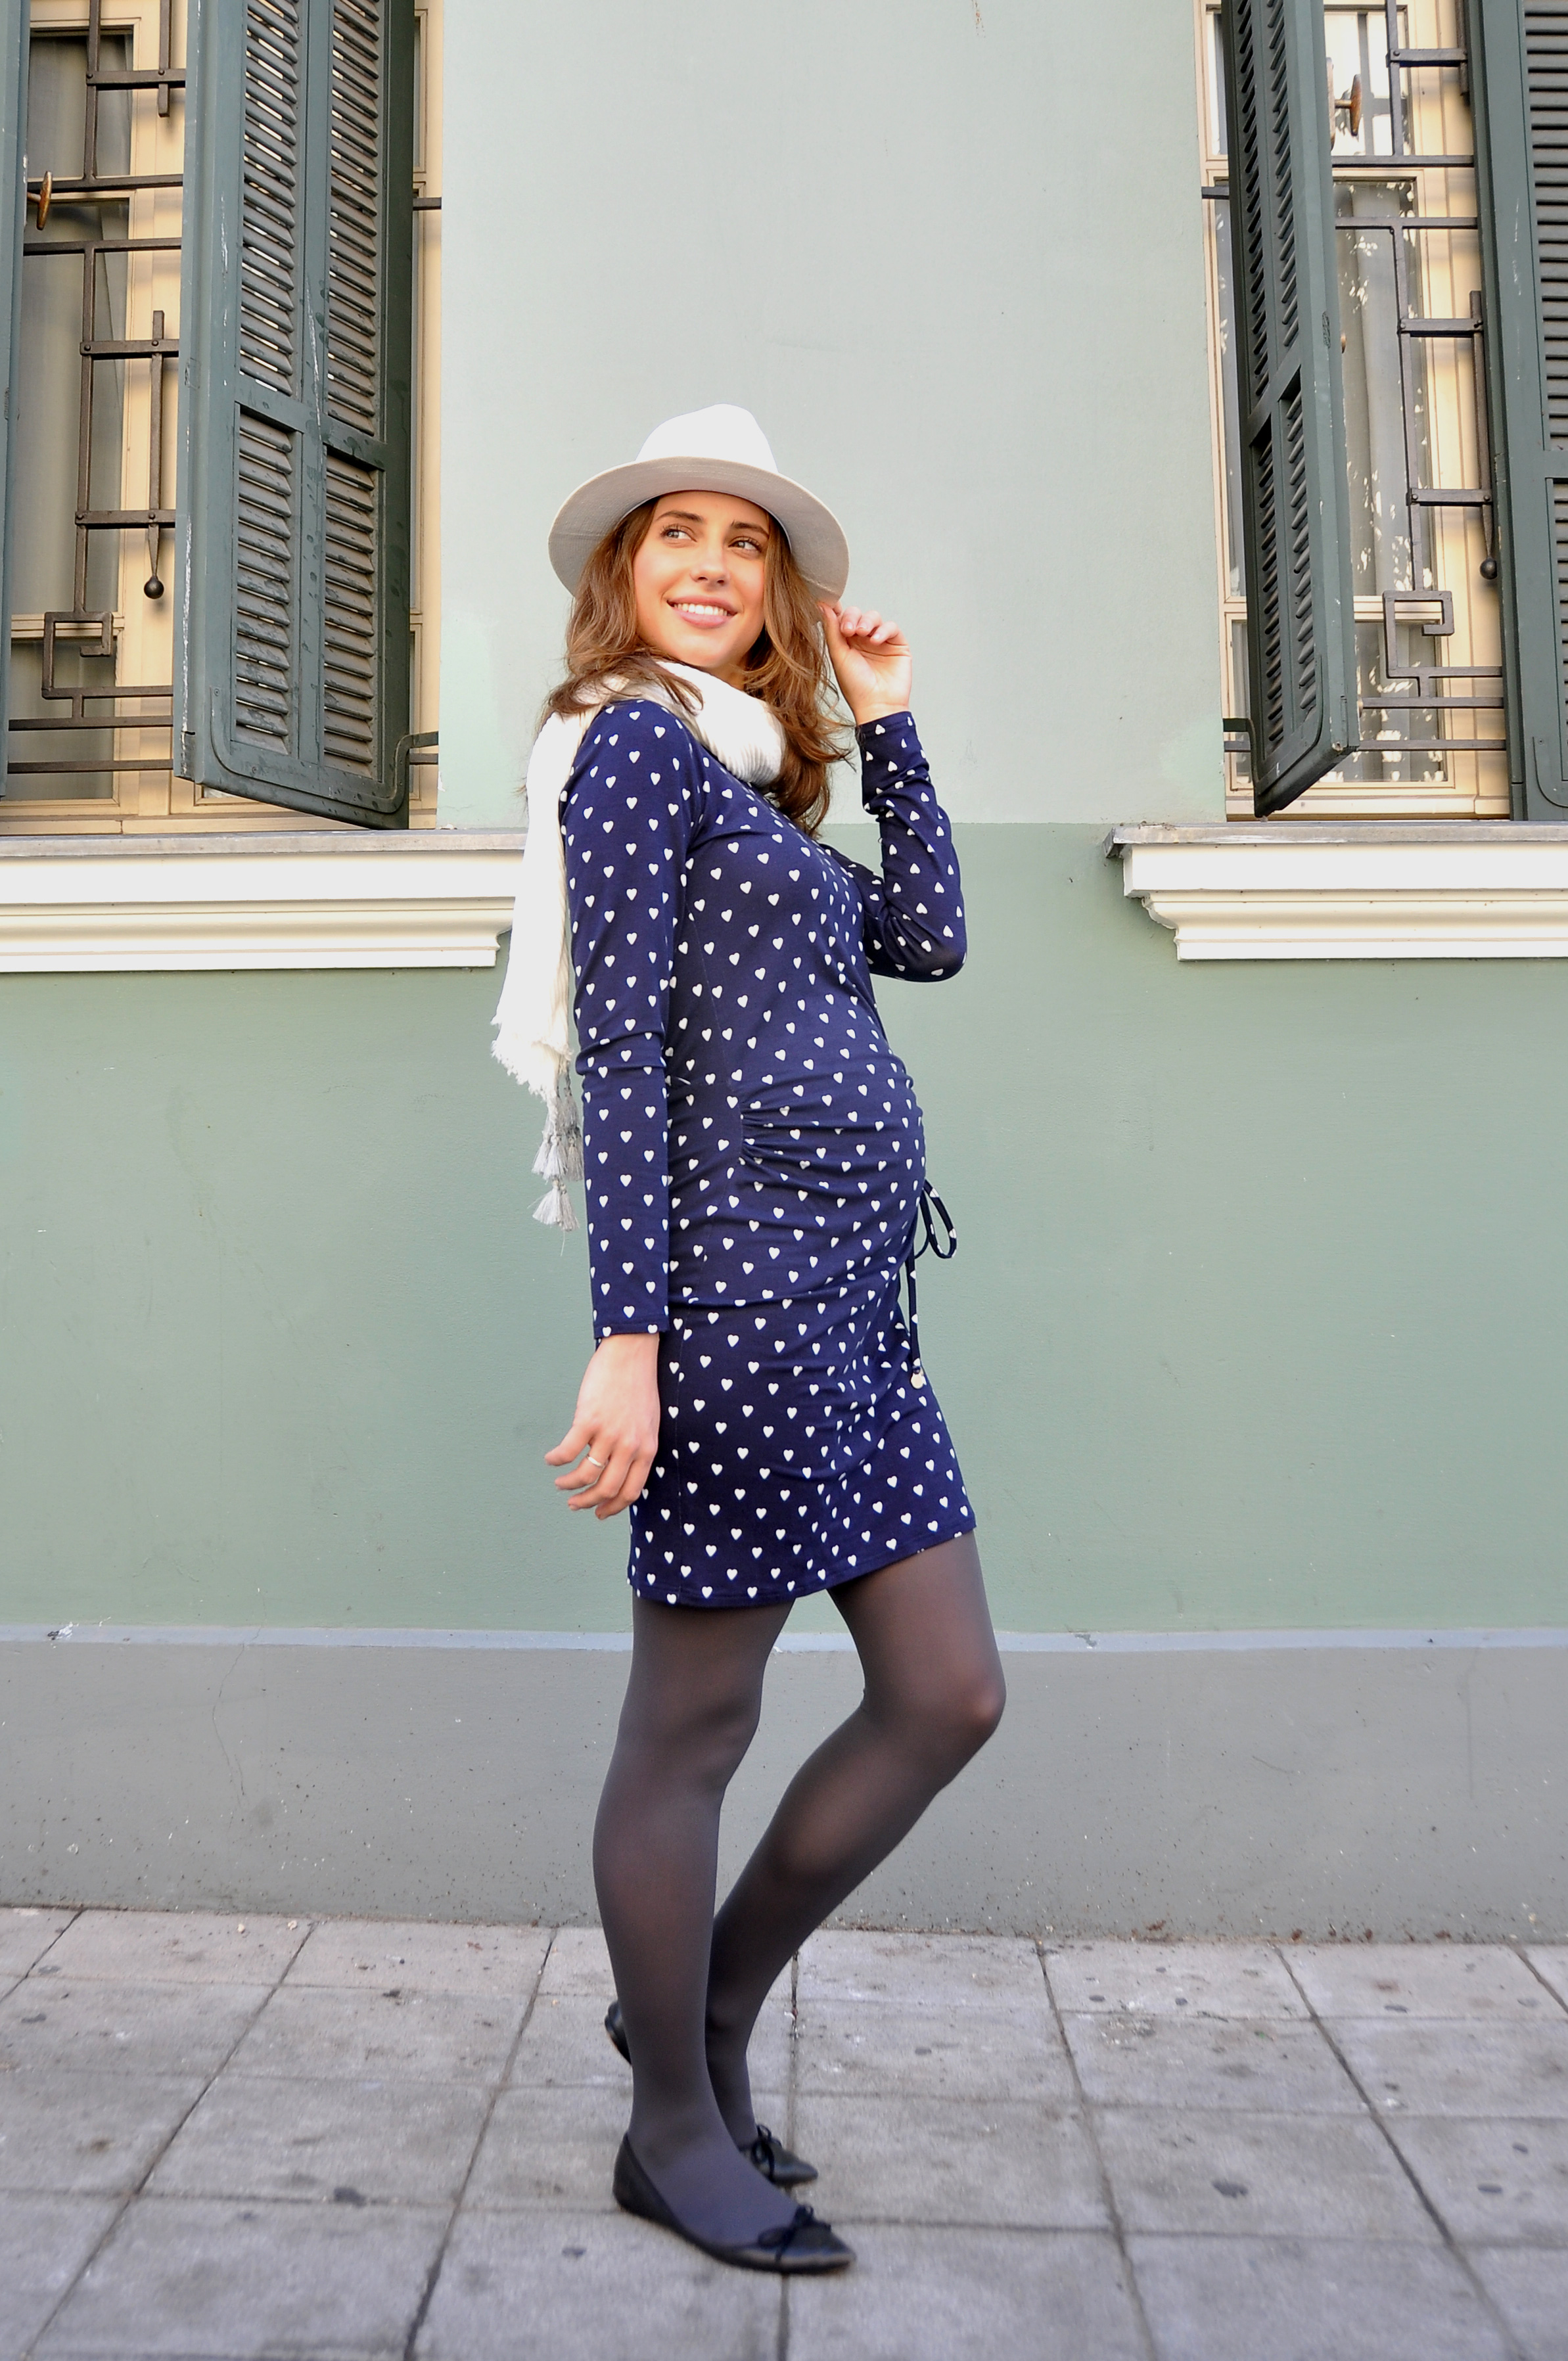 pregnant_and_chic-1.jpg